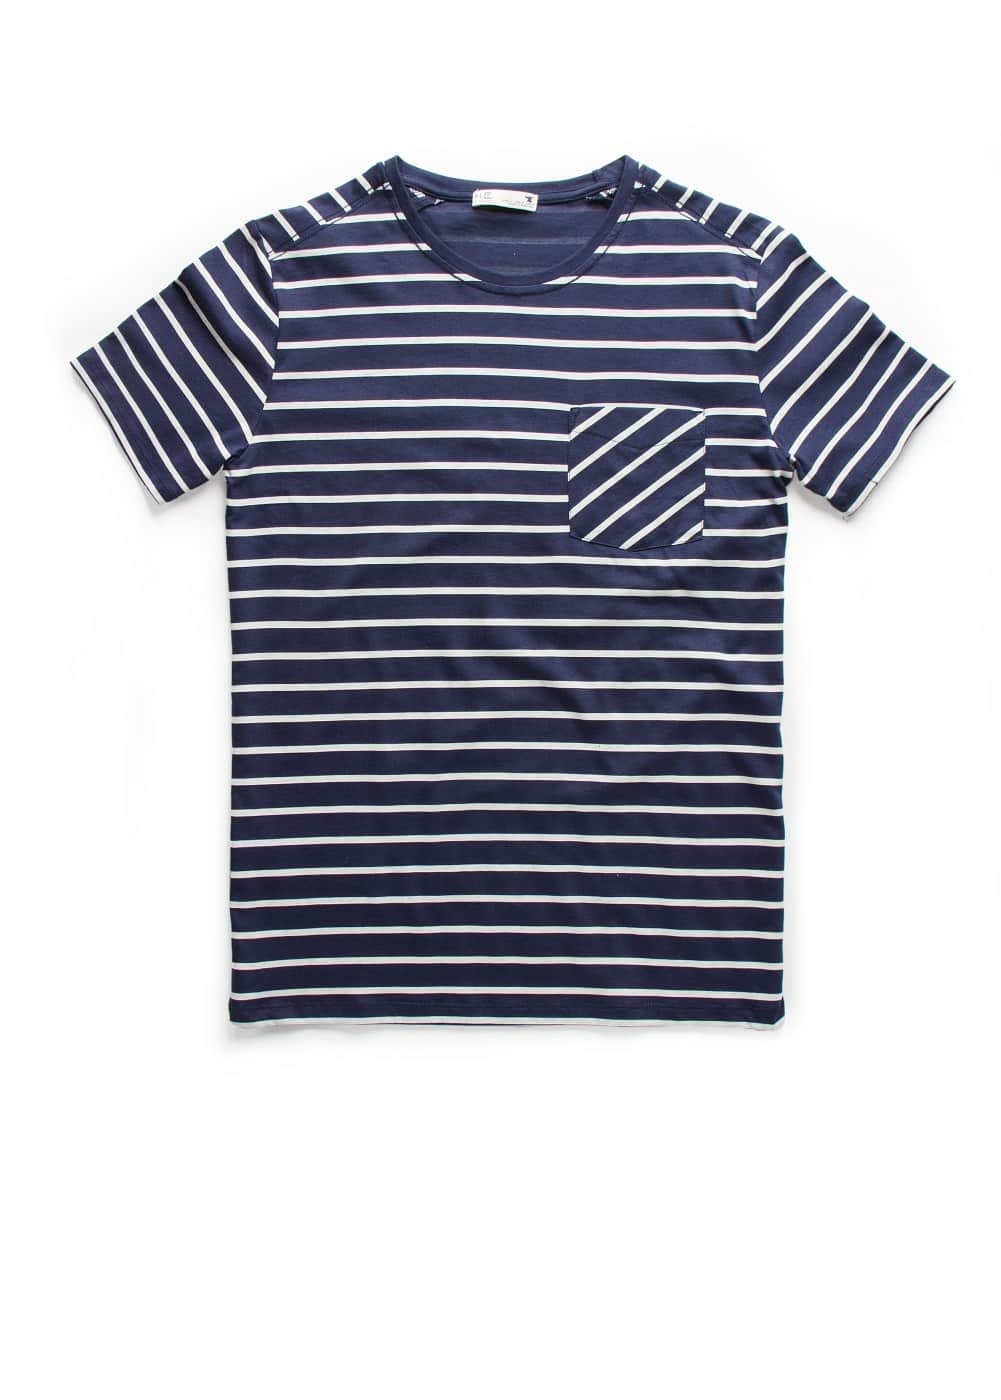 Chest-pocket striped t-shirt | MANGO